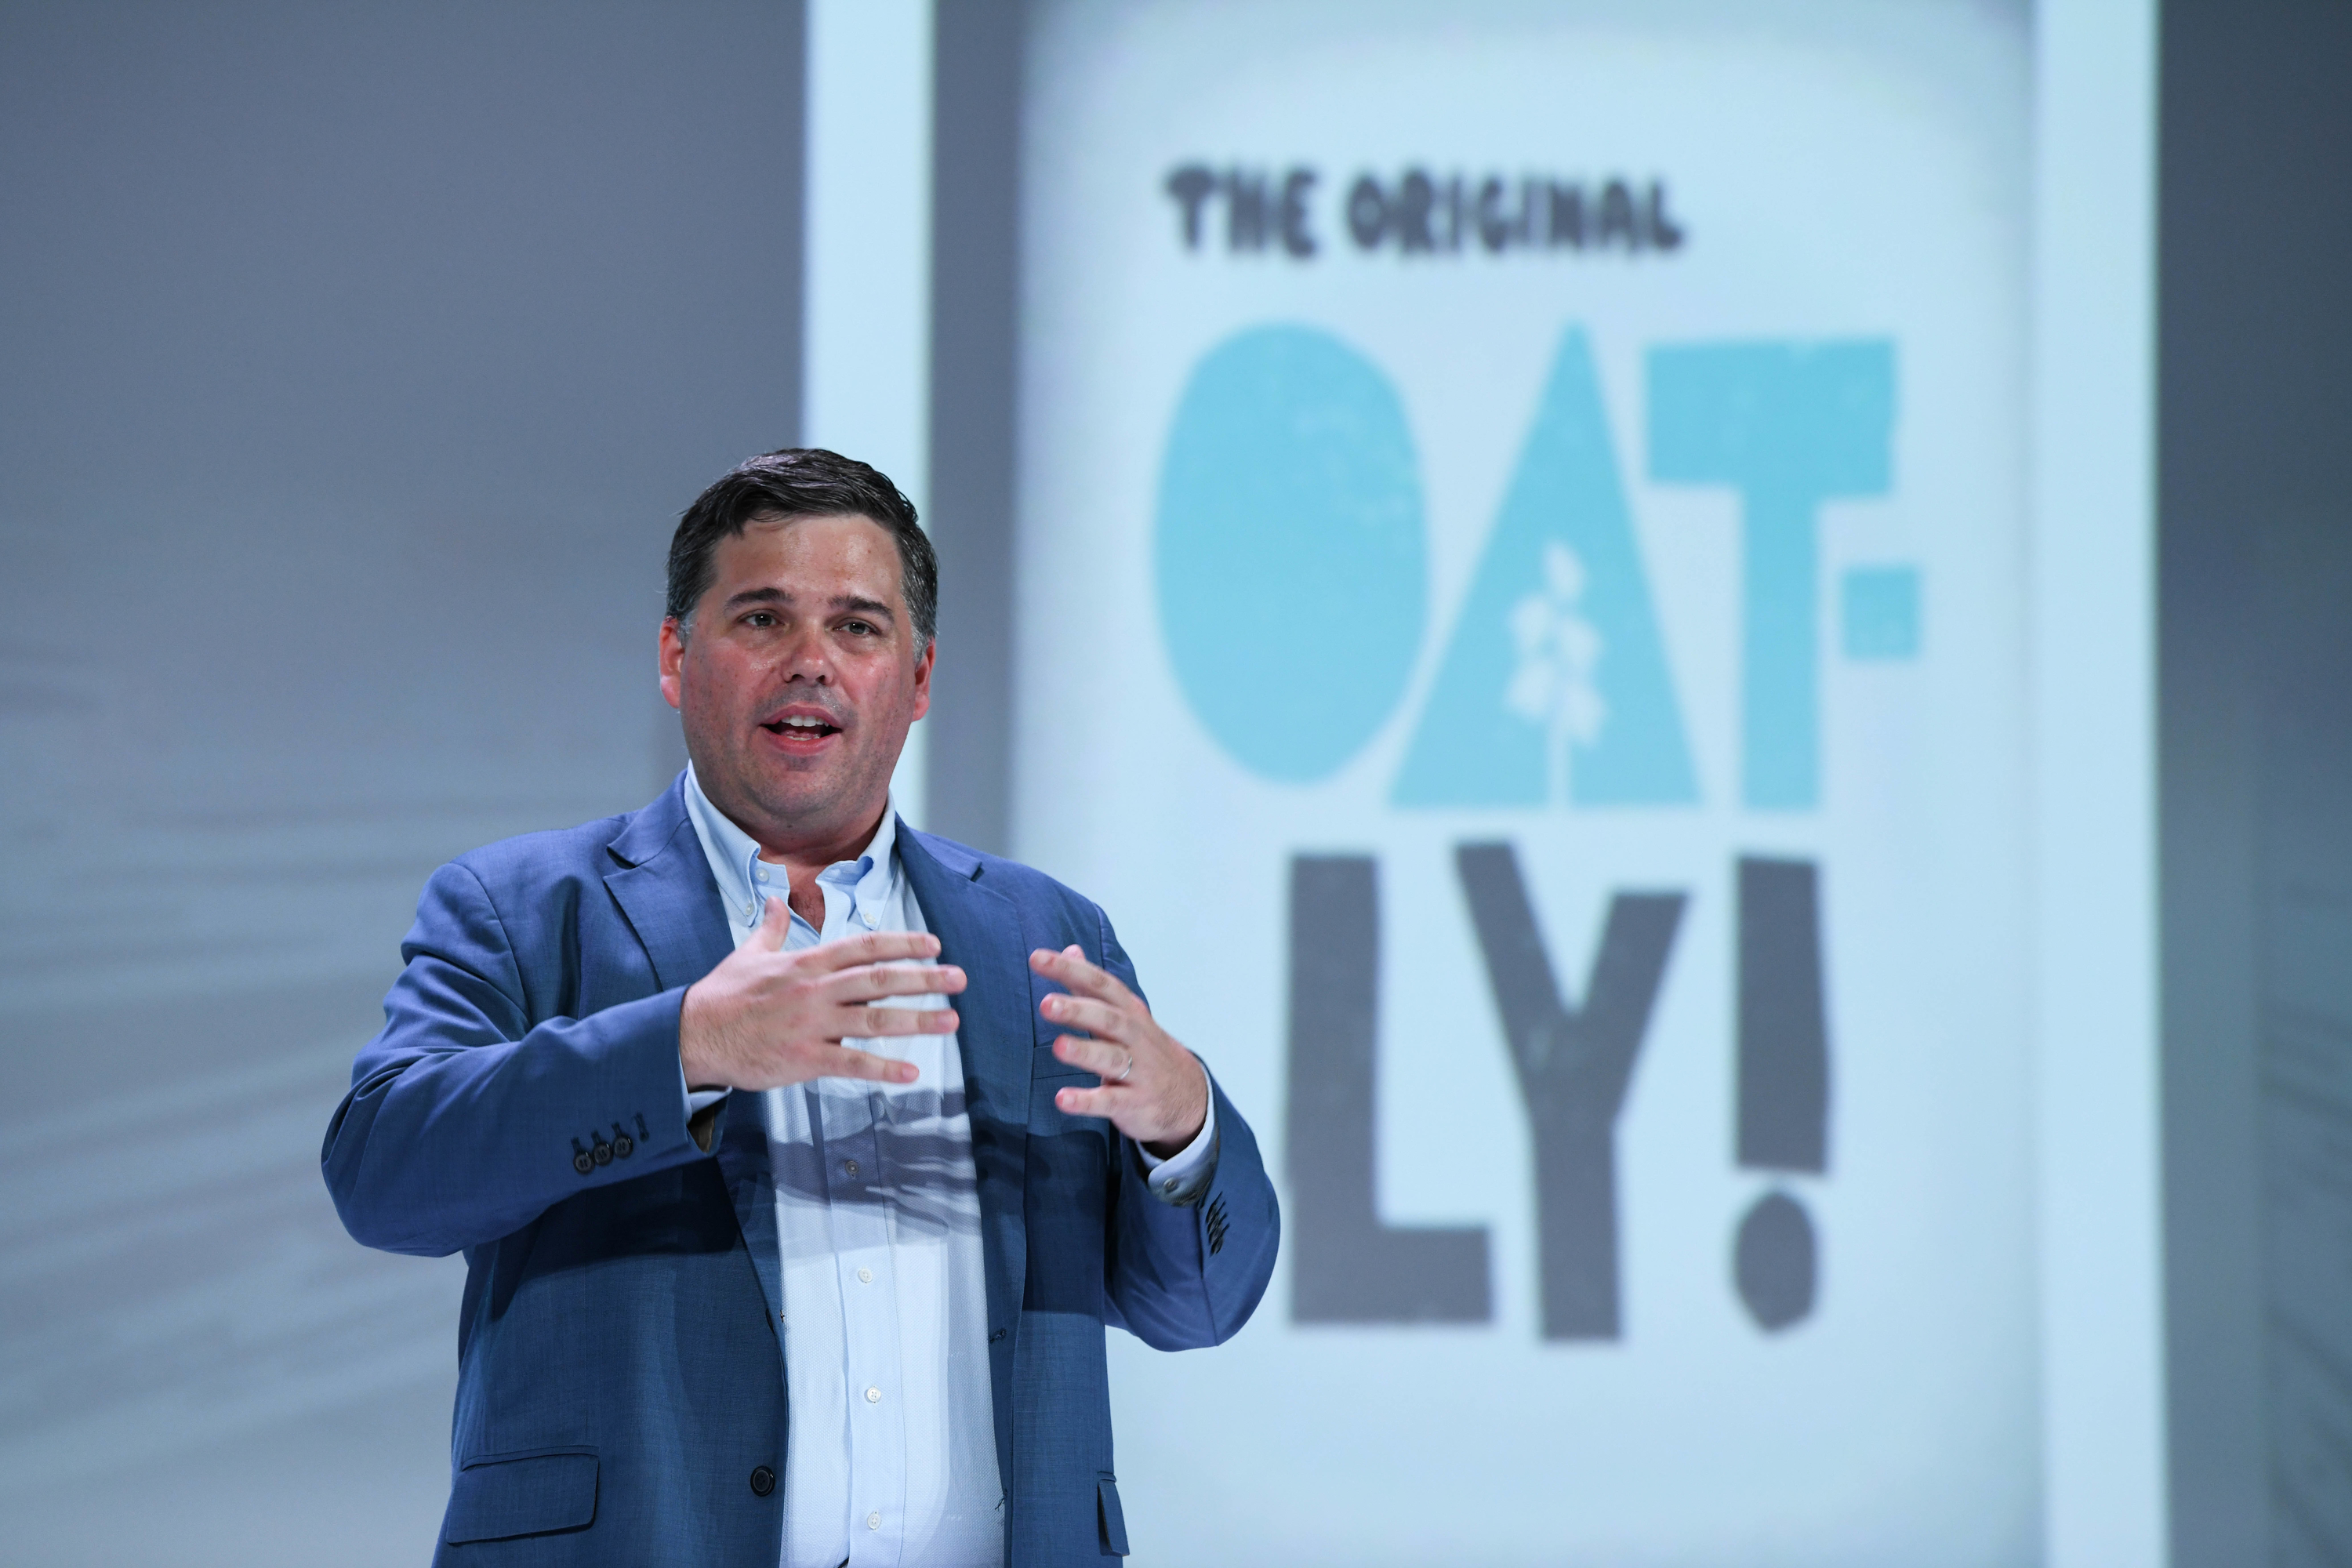 Oatly's own team boosts awareness, just don't call it an in-house agency